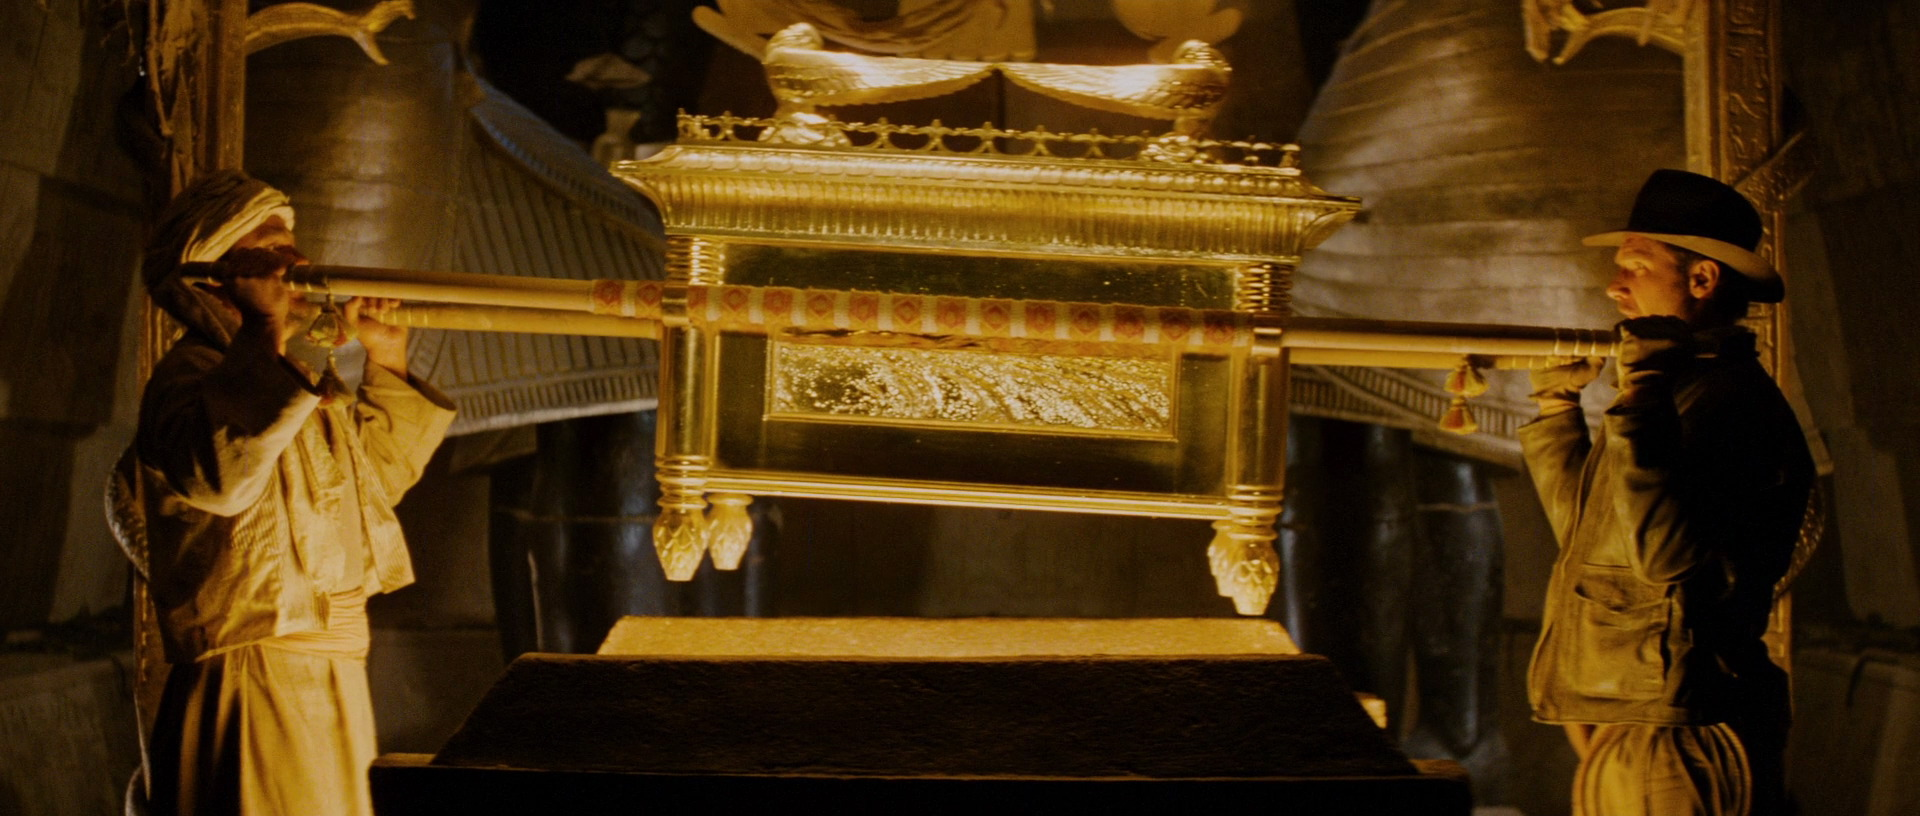 Ark of the Covenant | Disney Wiki | FANDOM powered by Wikia